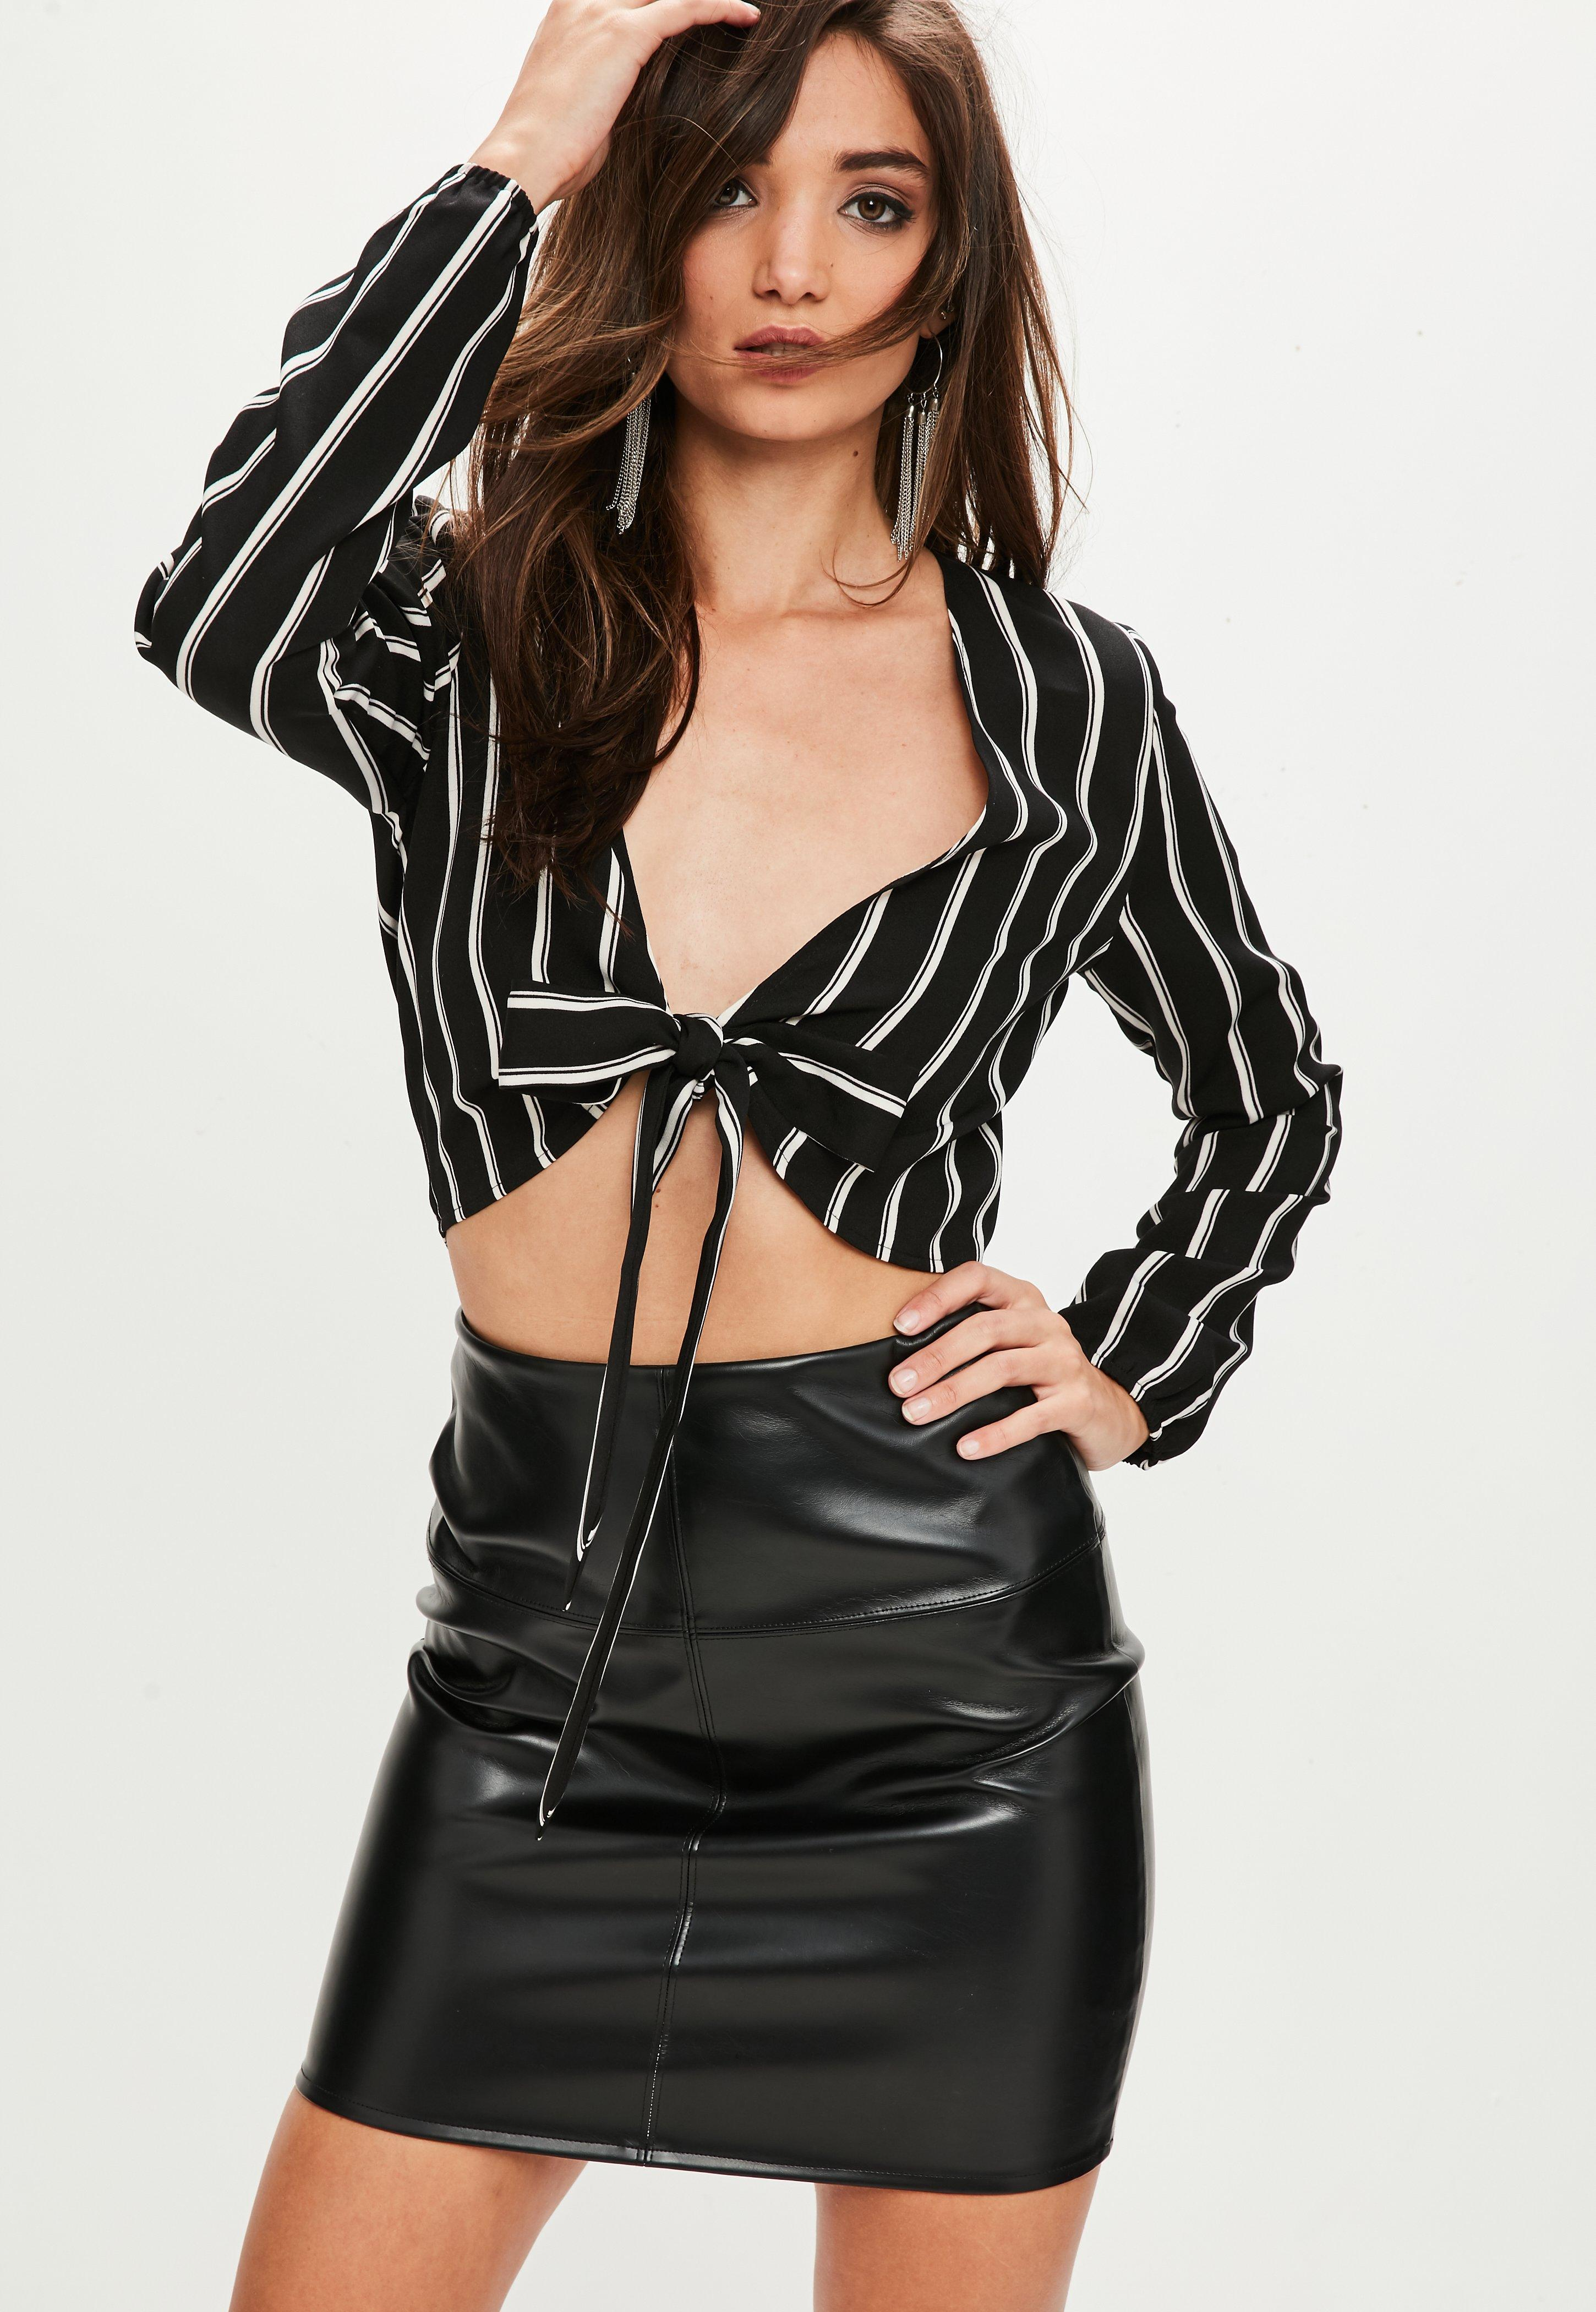 fb5243ff4f858 Missguided Black Tie Front Crop Top Stripe in Black - Lyst